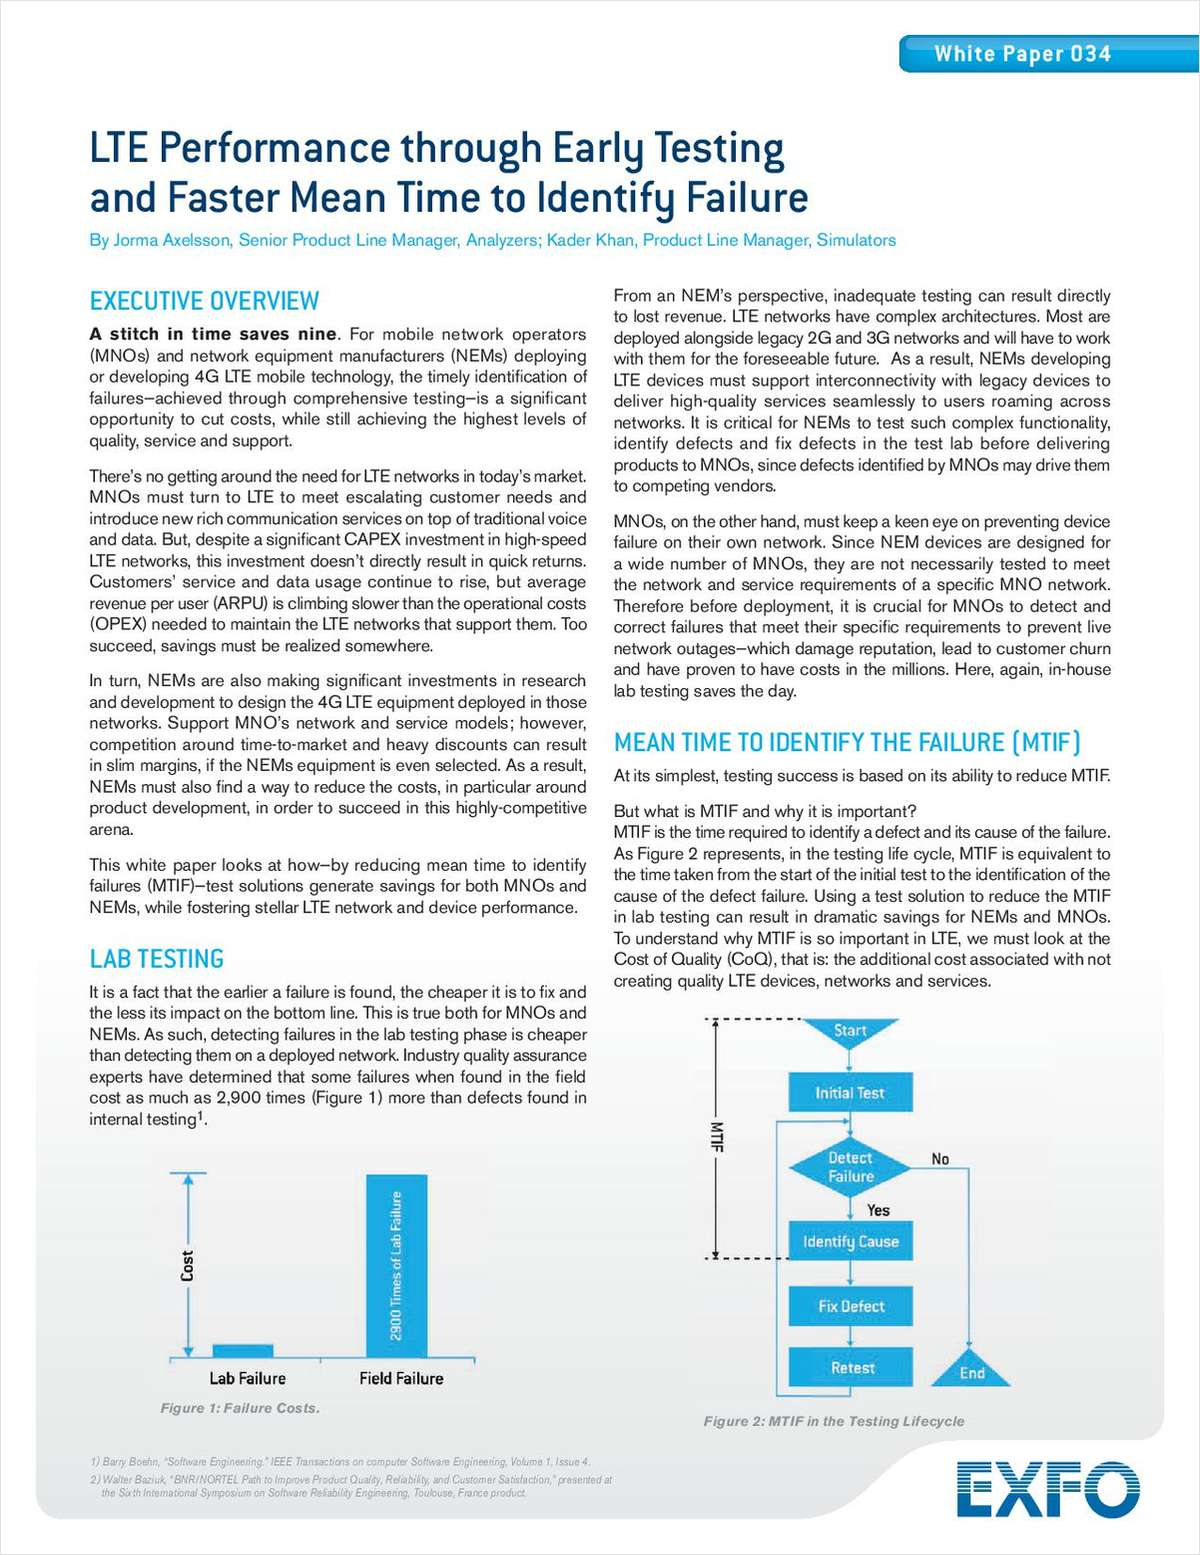 LTE Performance through Early Testing and Faster Mean Time to Identify Failure